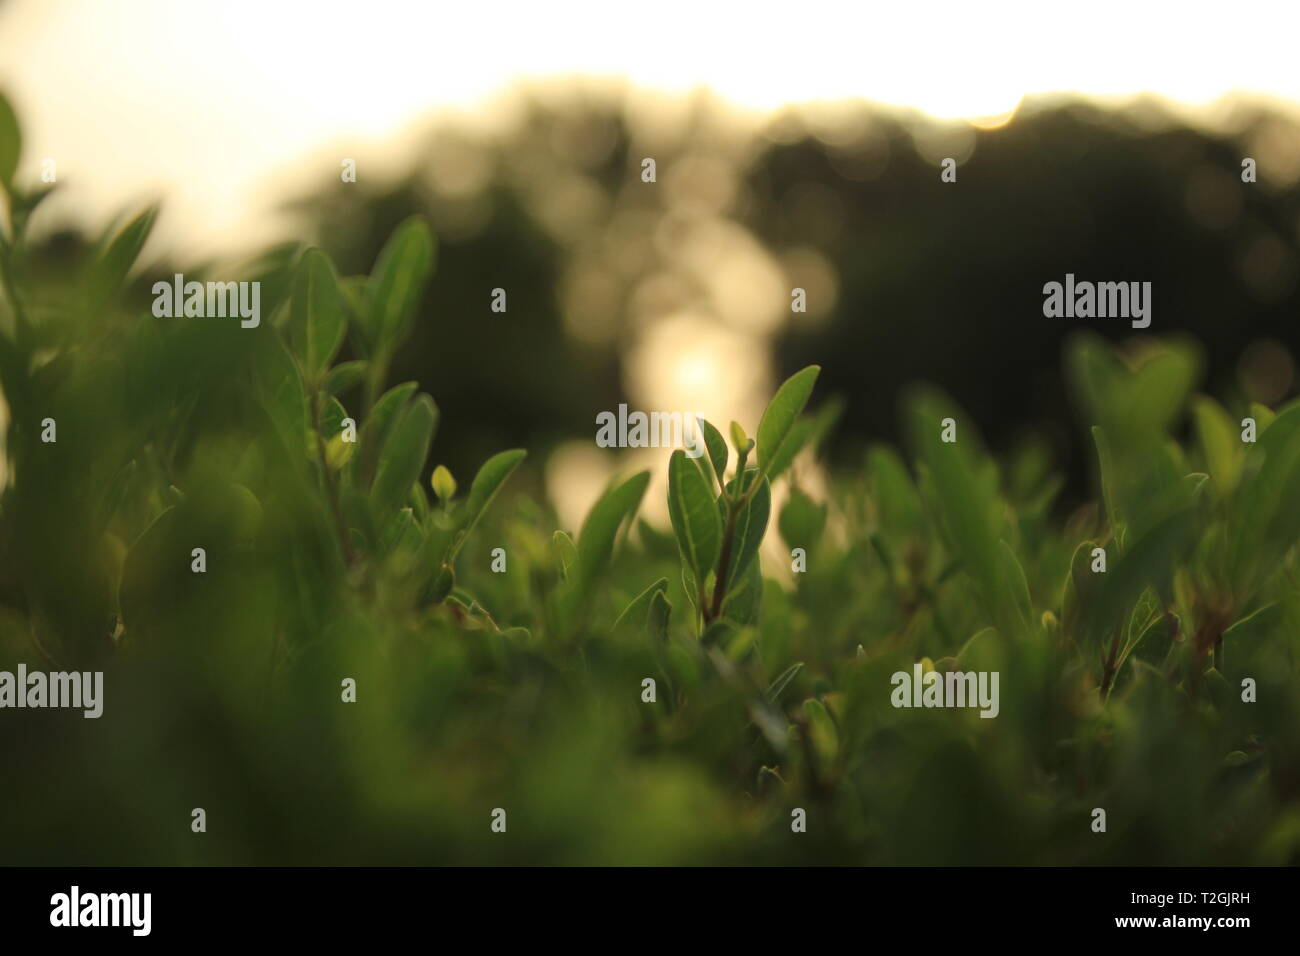 A Leaf in a bush at sunset in a Public Park in KAEC - Stock Image